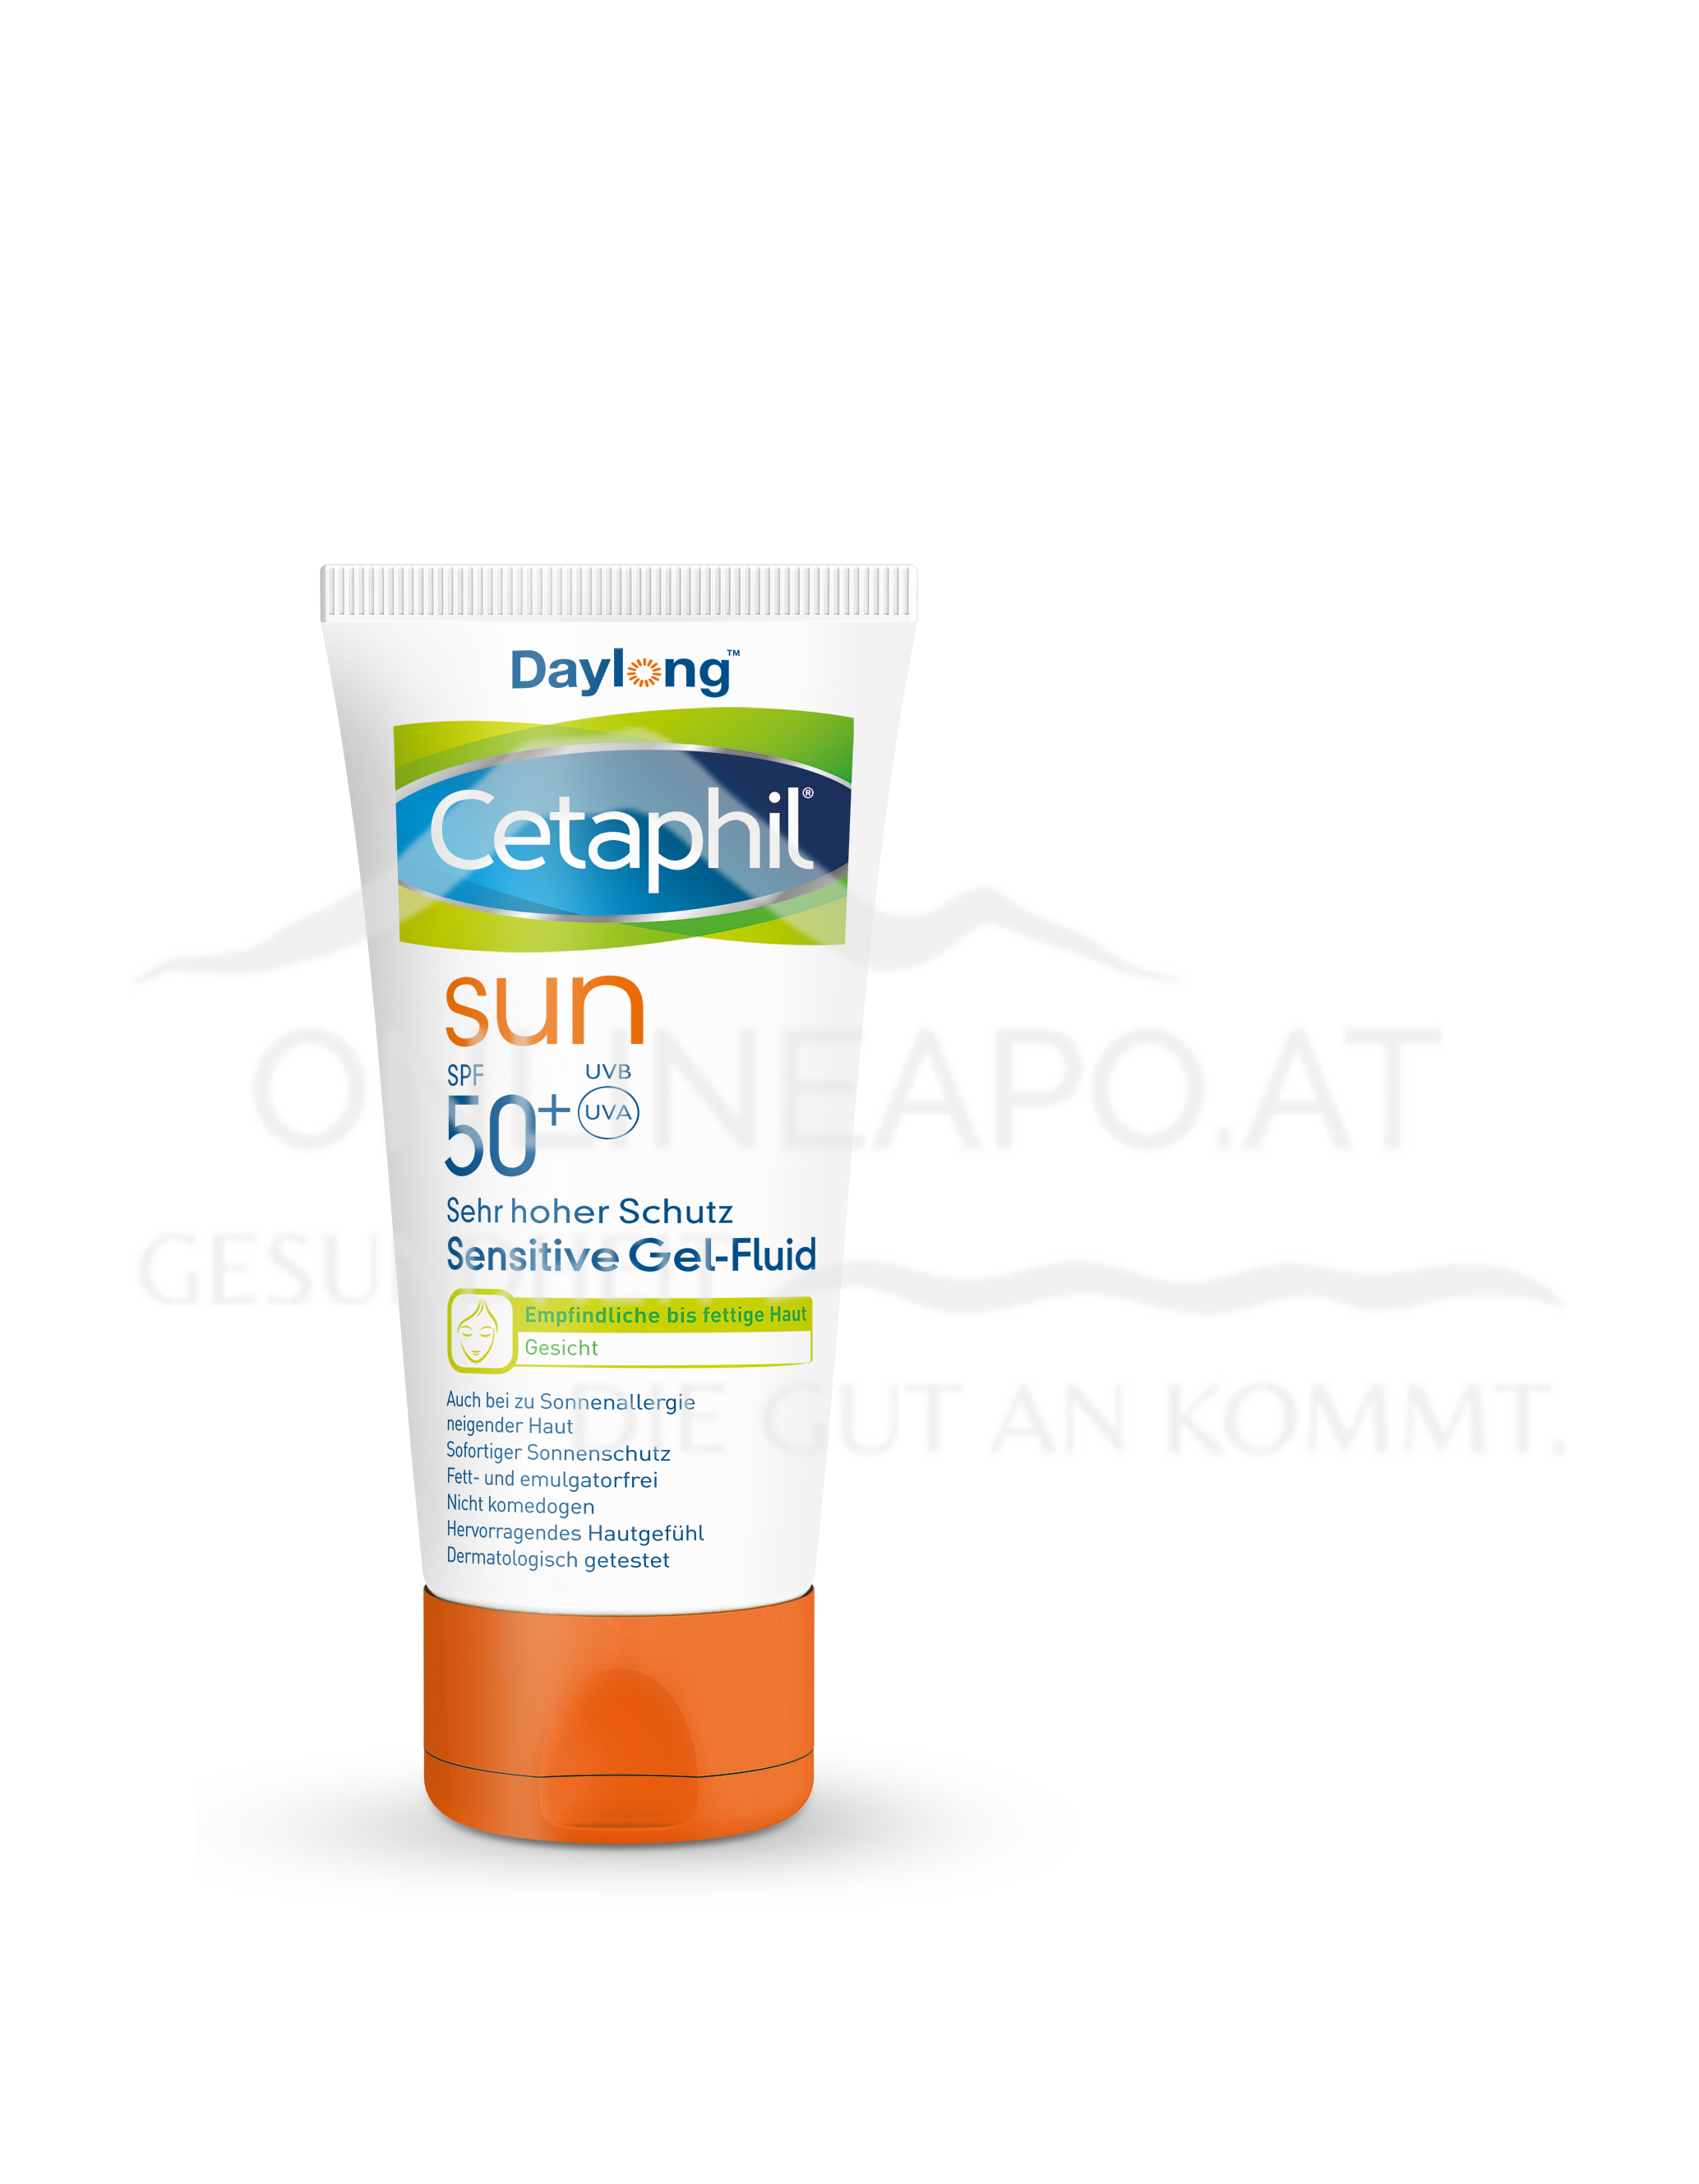 Cetaphil® Sun Daylong™ Sensitive Gel-Fluid Gesicht SPF 50+